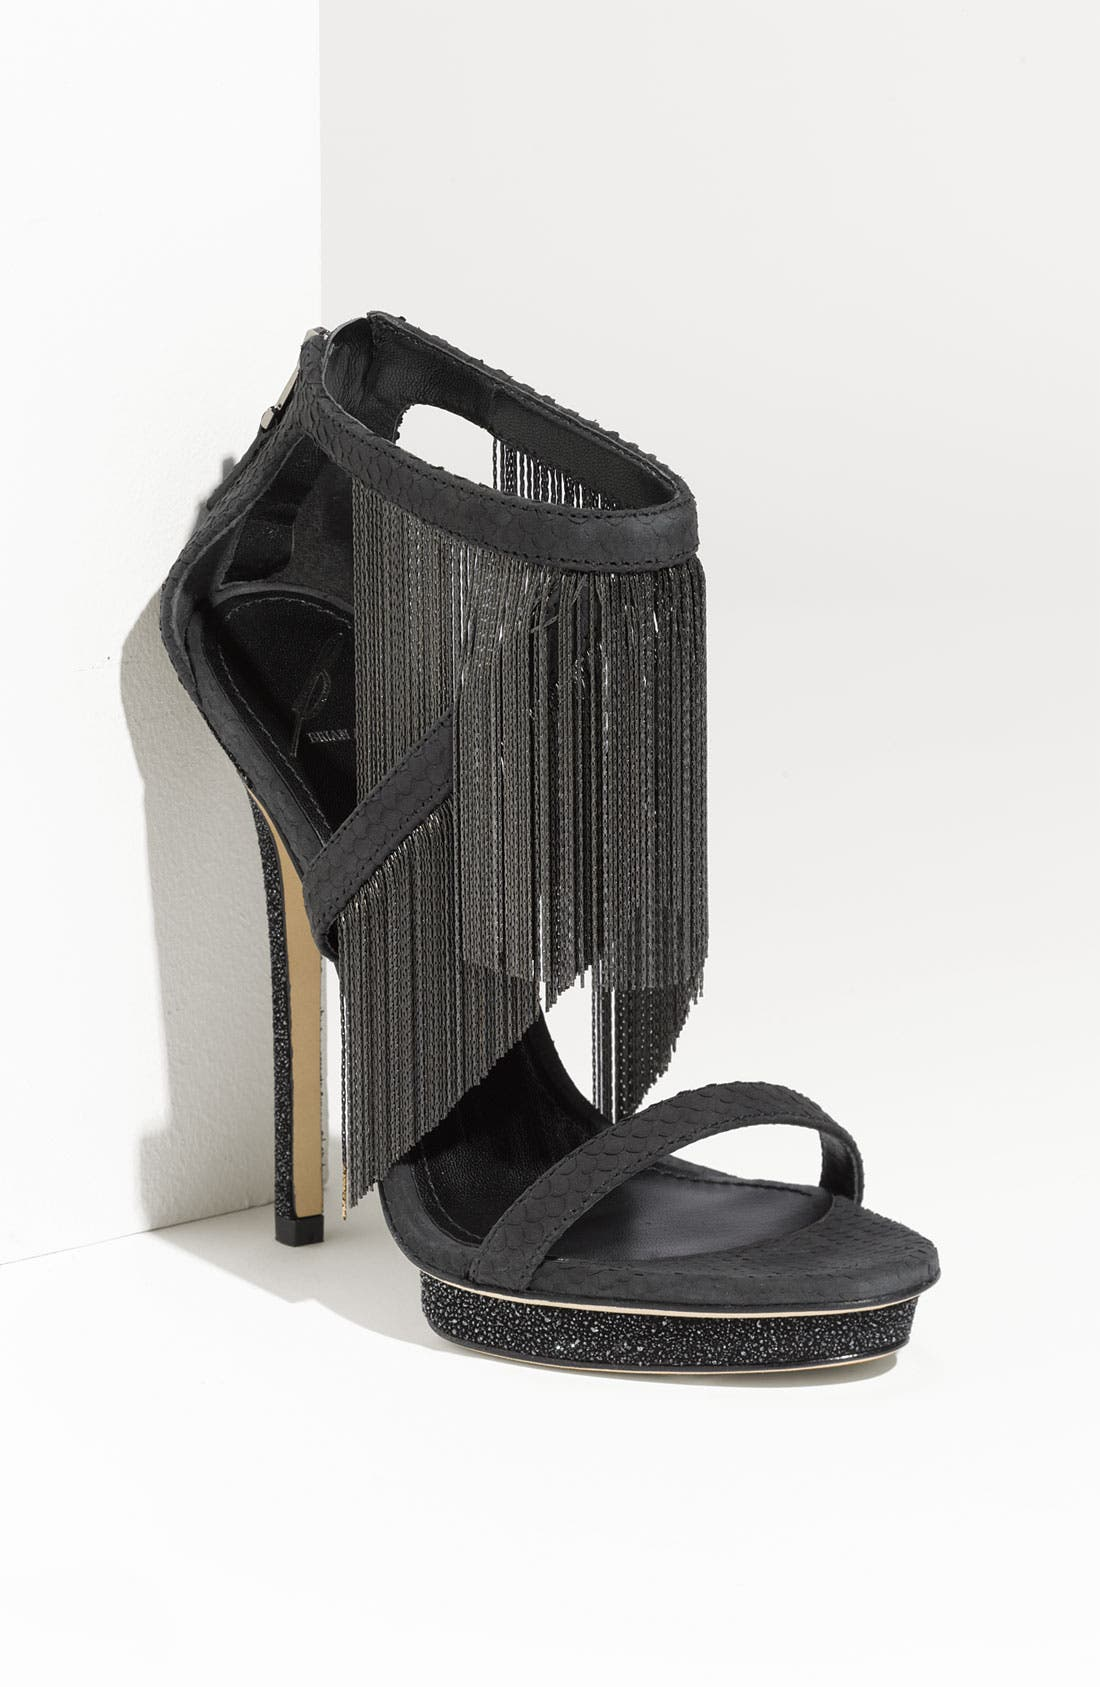 Alternate Image 1 Selected - B Brian Atwood 'Cassiane' Sandal